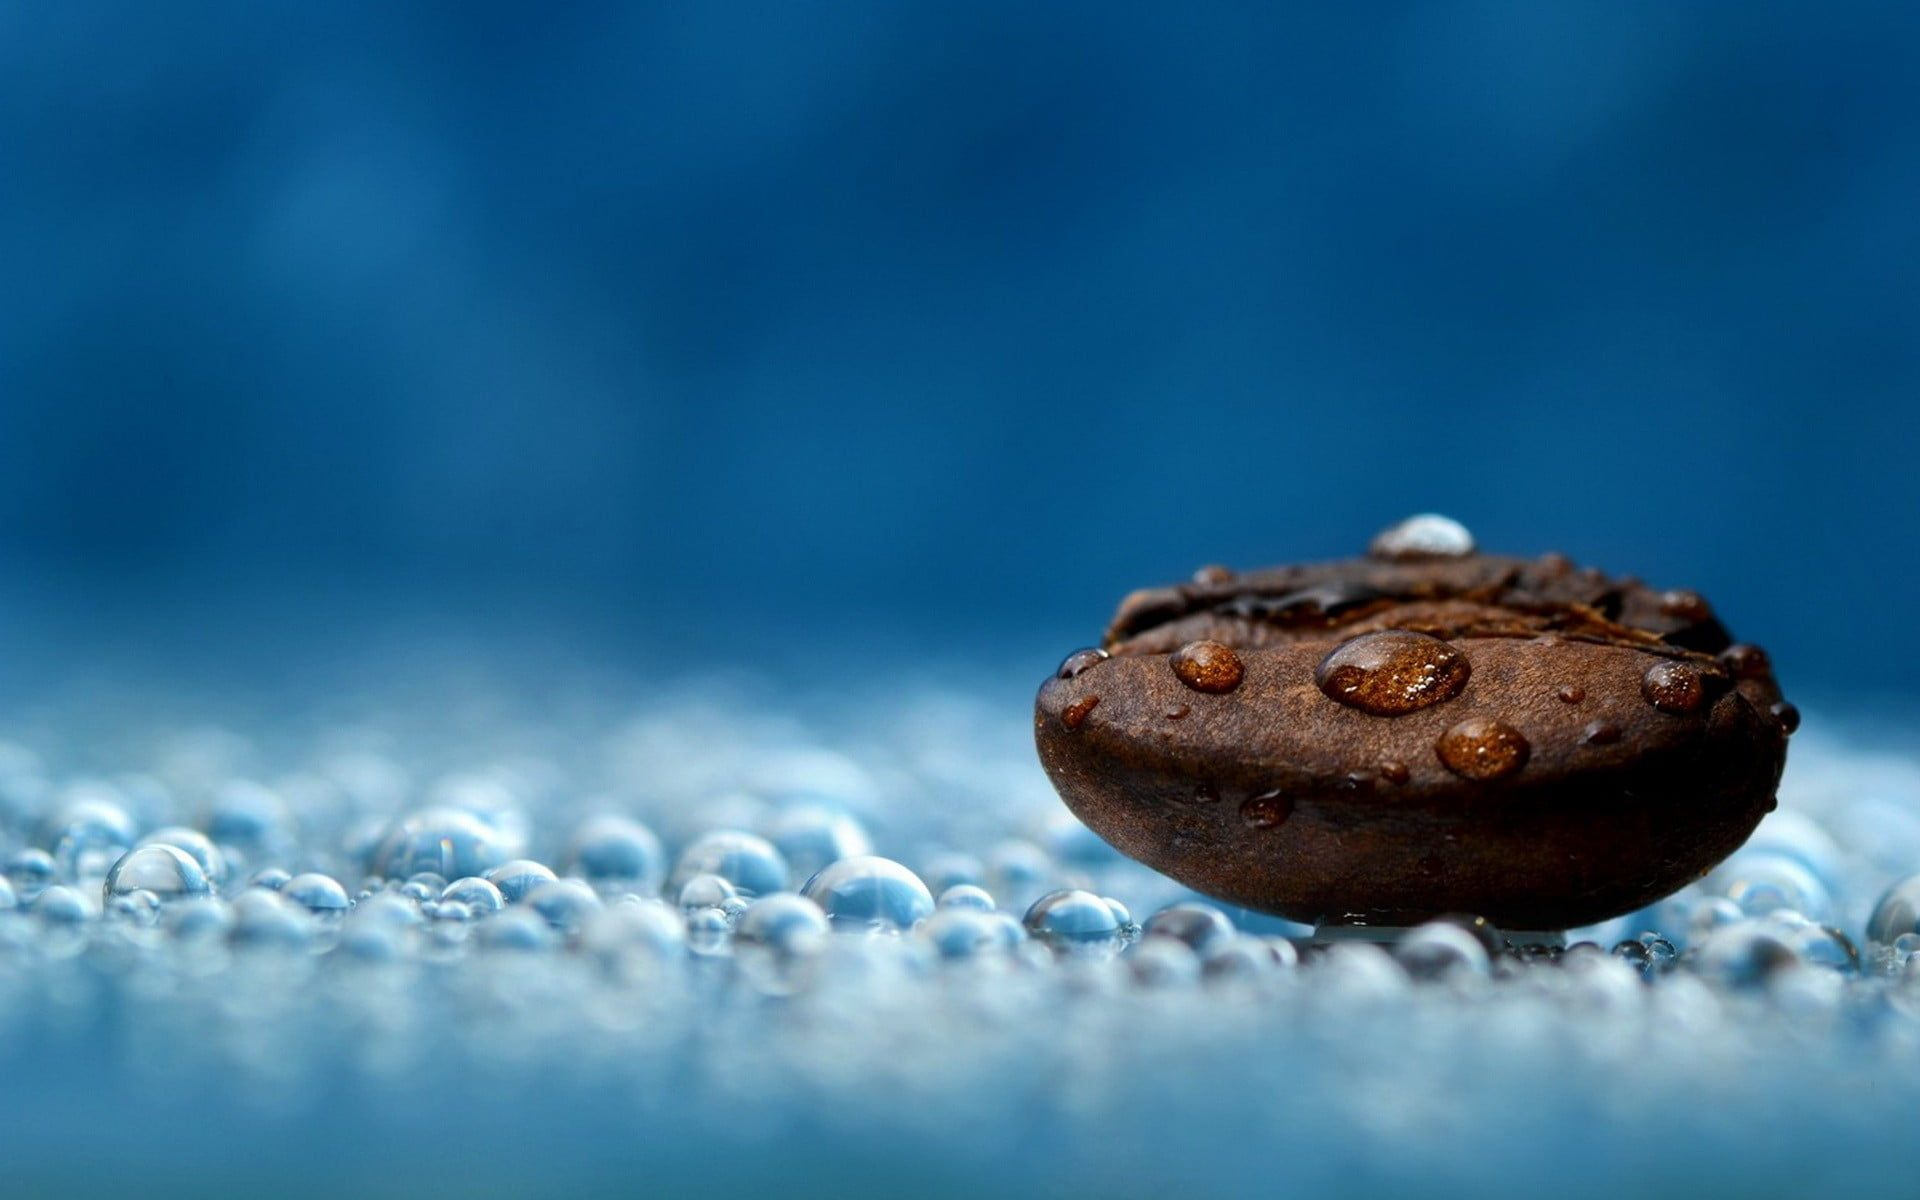 Coffee Bean Macro Depth Of Field Coffee Beans Water Drops Blue Photography Coffee Relaxing 1080p Wallpaper Hdwallpaper Coffee Beans Food Food Wallpaper Wallpaper coffee beans coffee ice hand